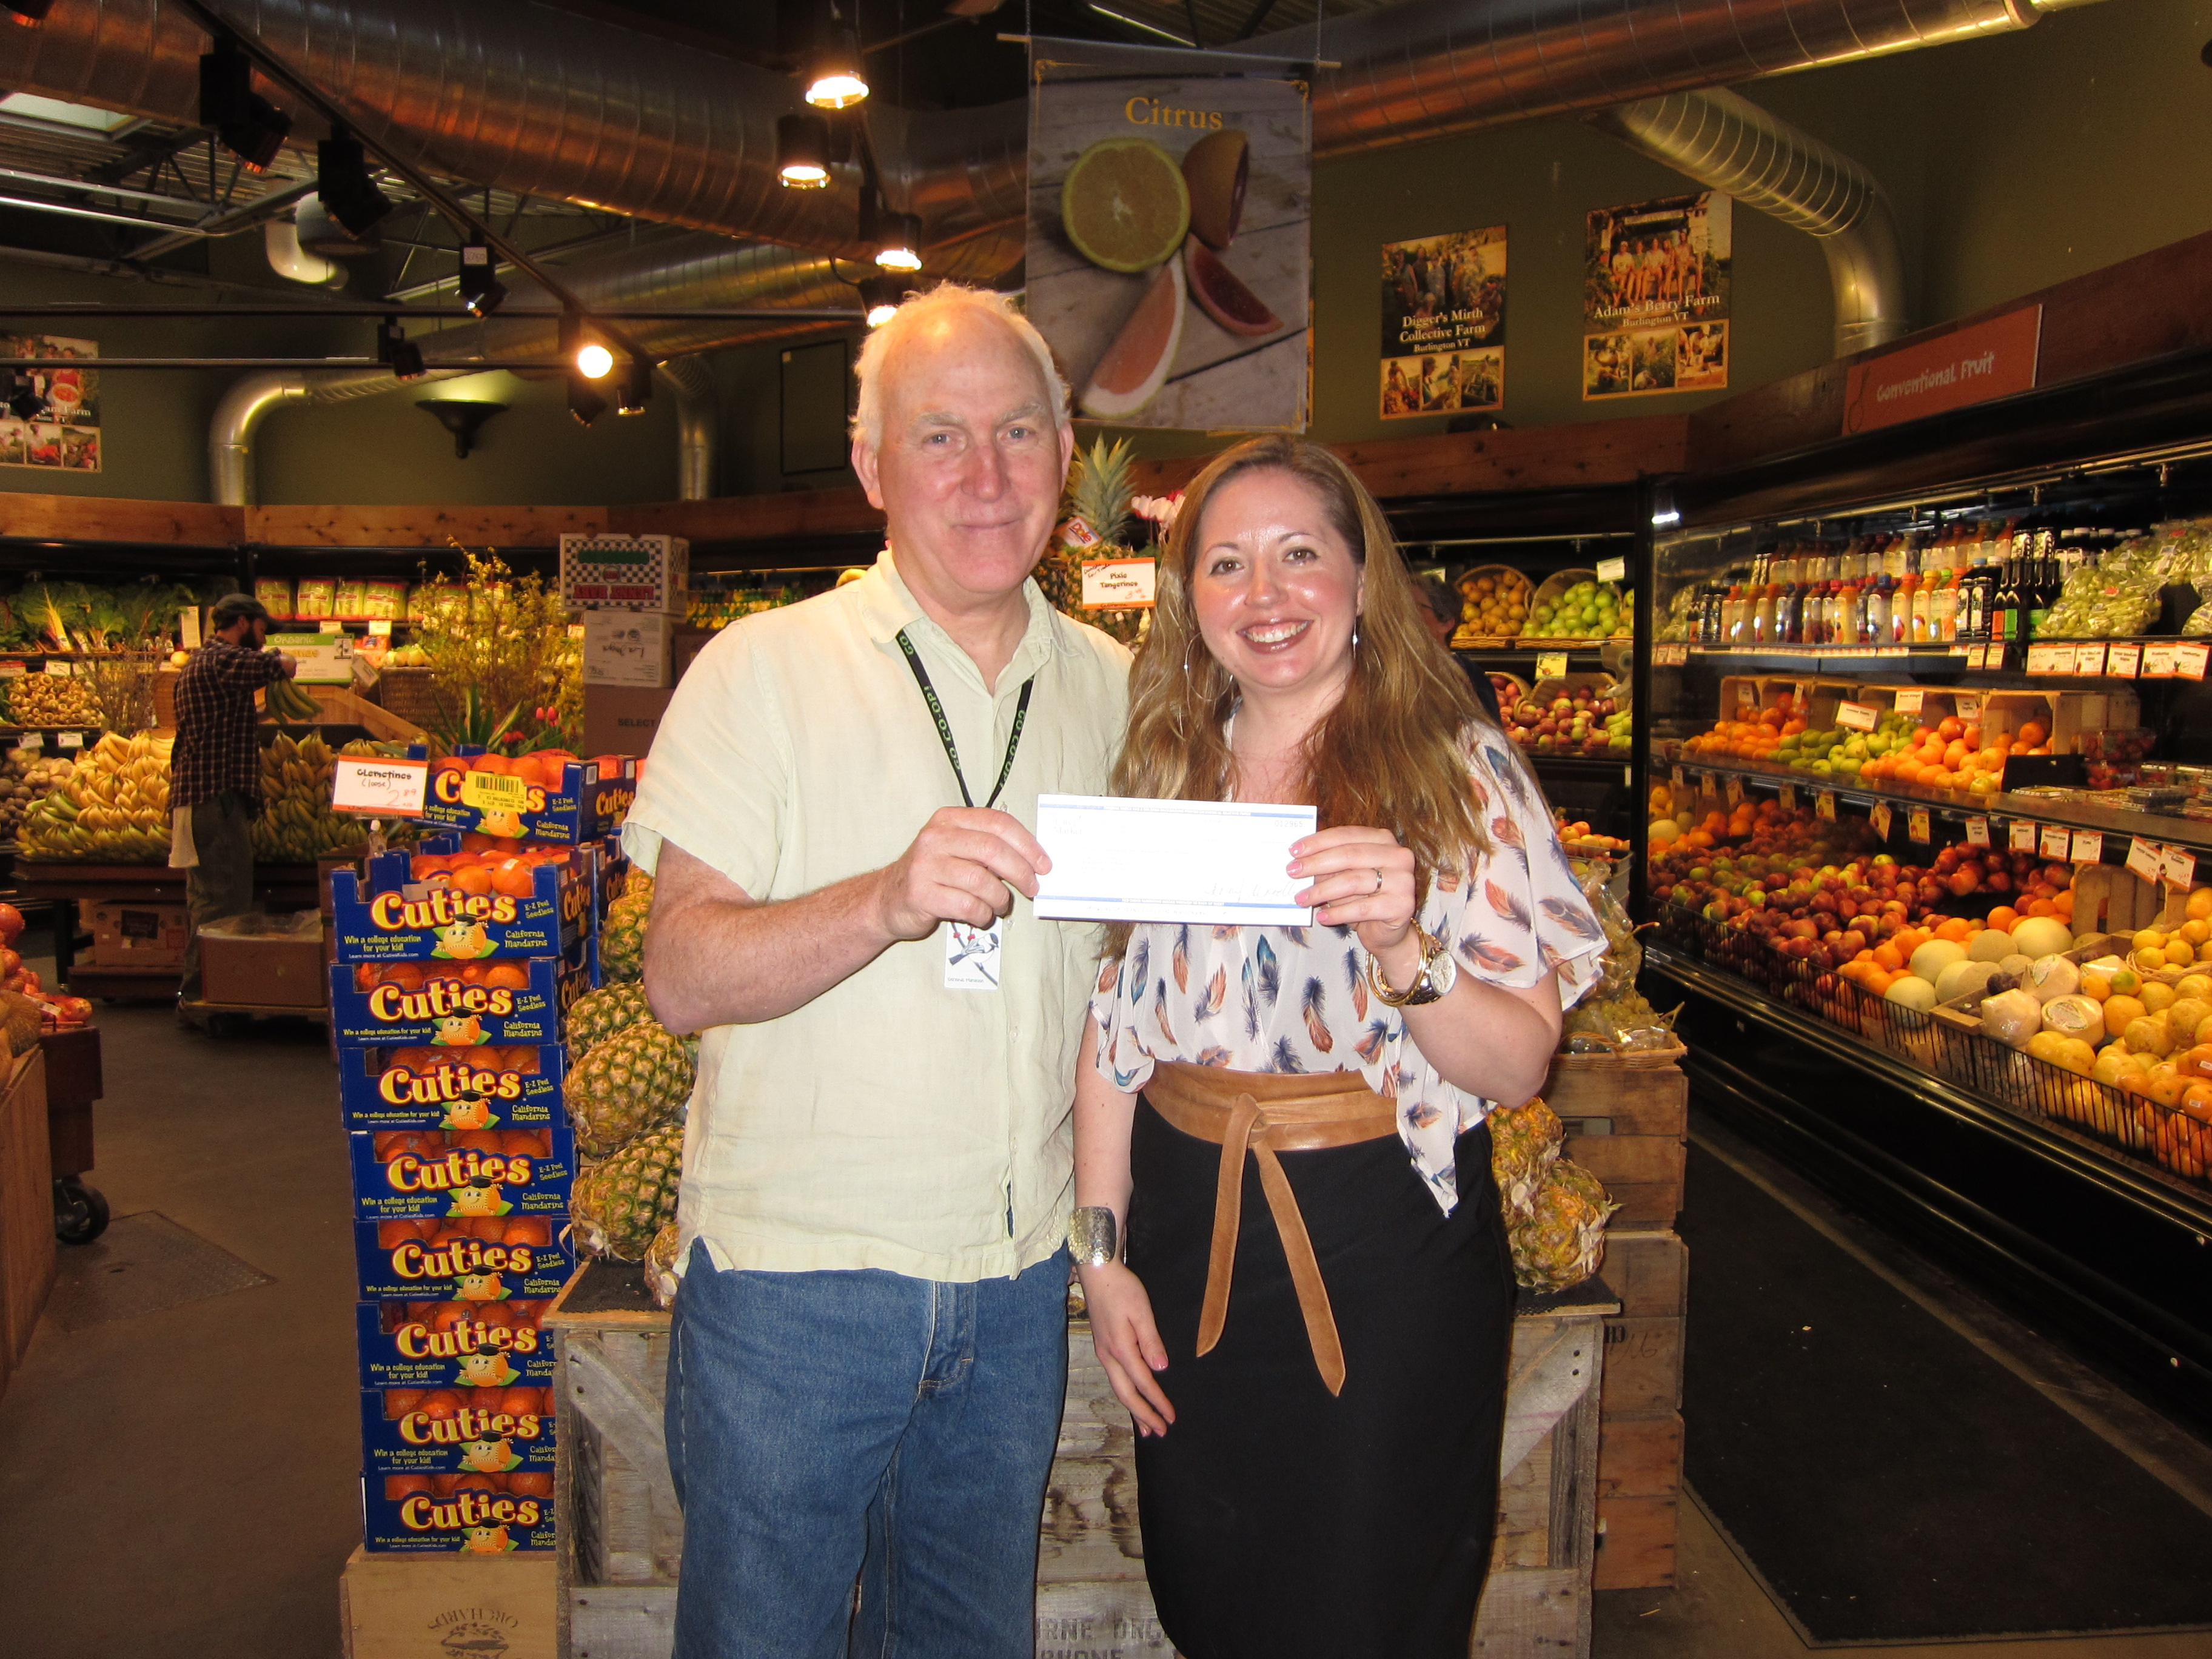 Clem Nilan, General Manager of City Market, presents a donation check to Marissa Parisi, Executive Director of Hunger Free Vermont.